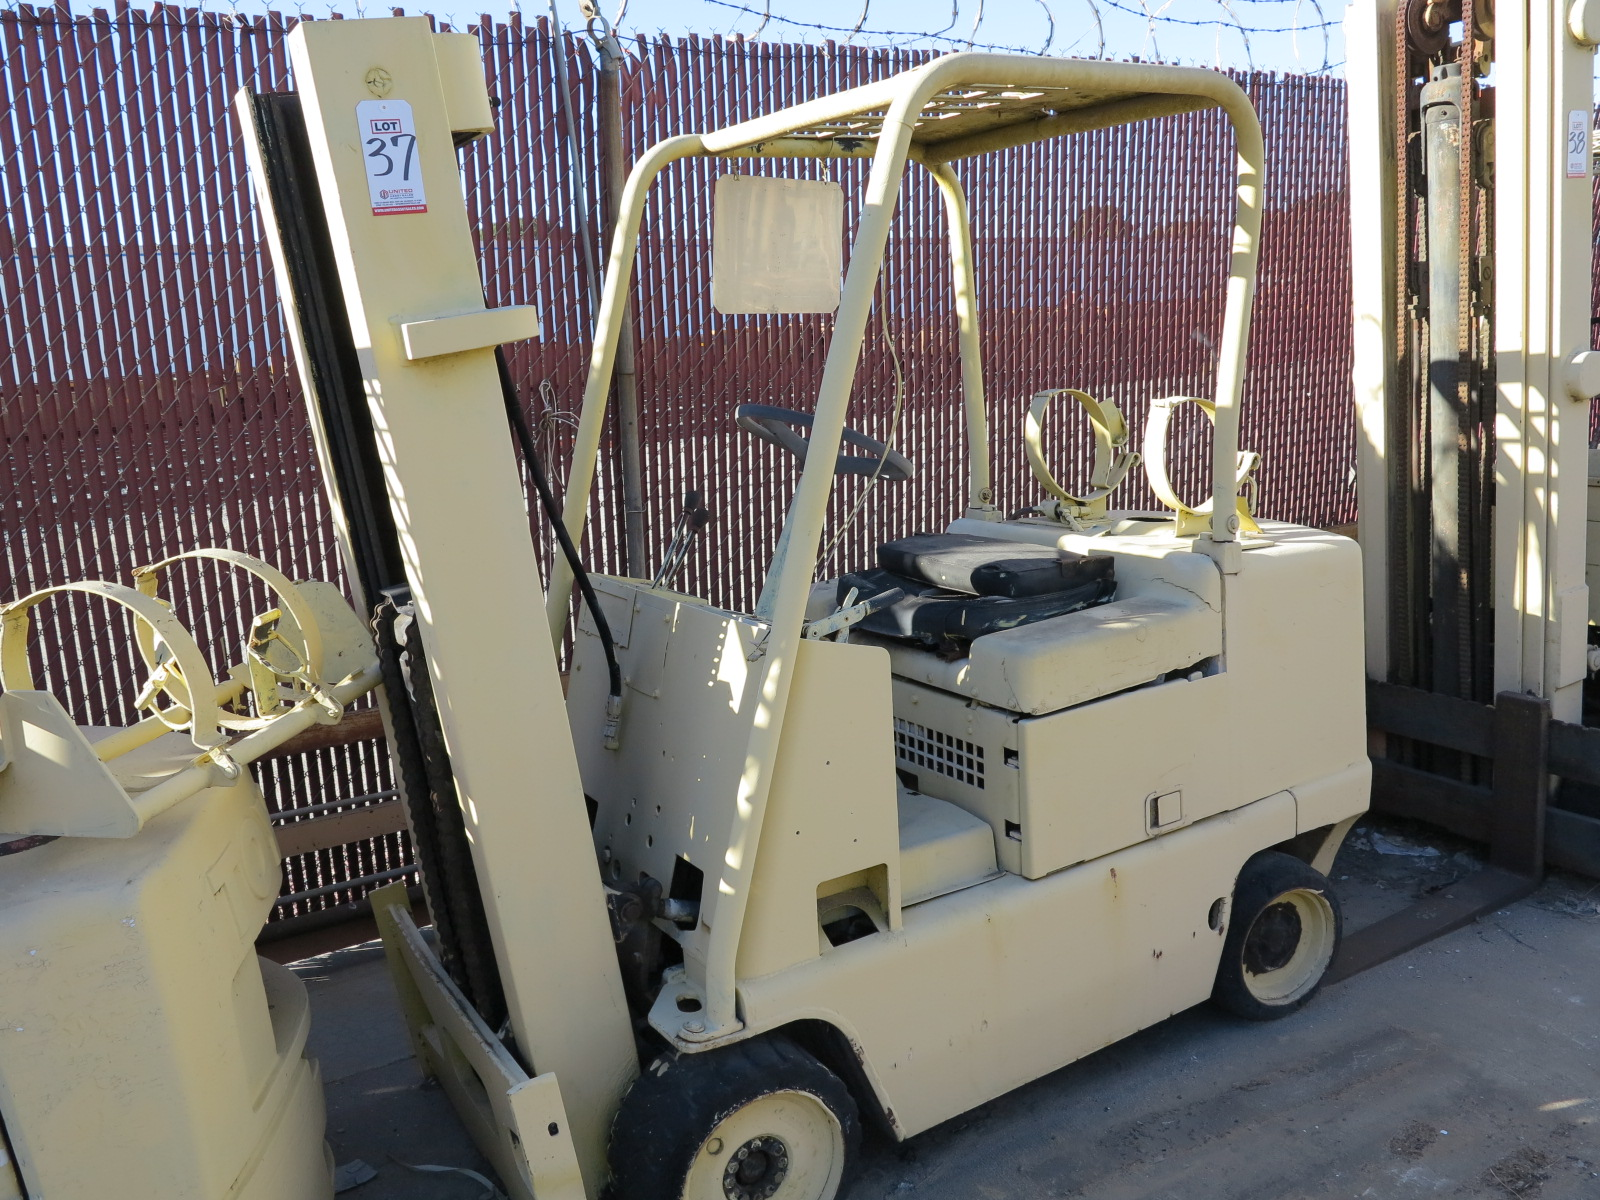 Lot 37 - CATERPILLAR LP FORKLIFT, OUT OF SERVICE